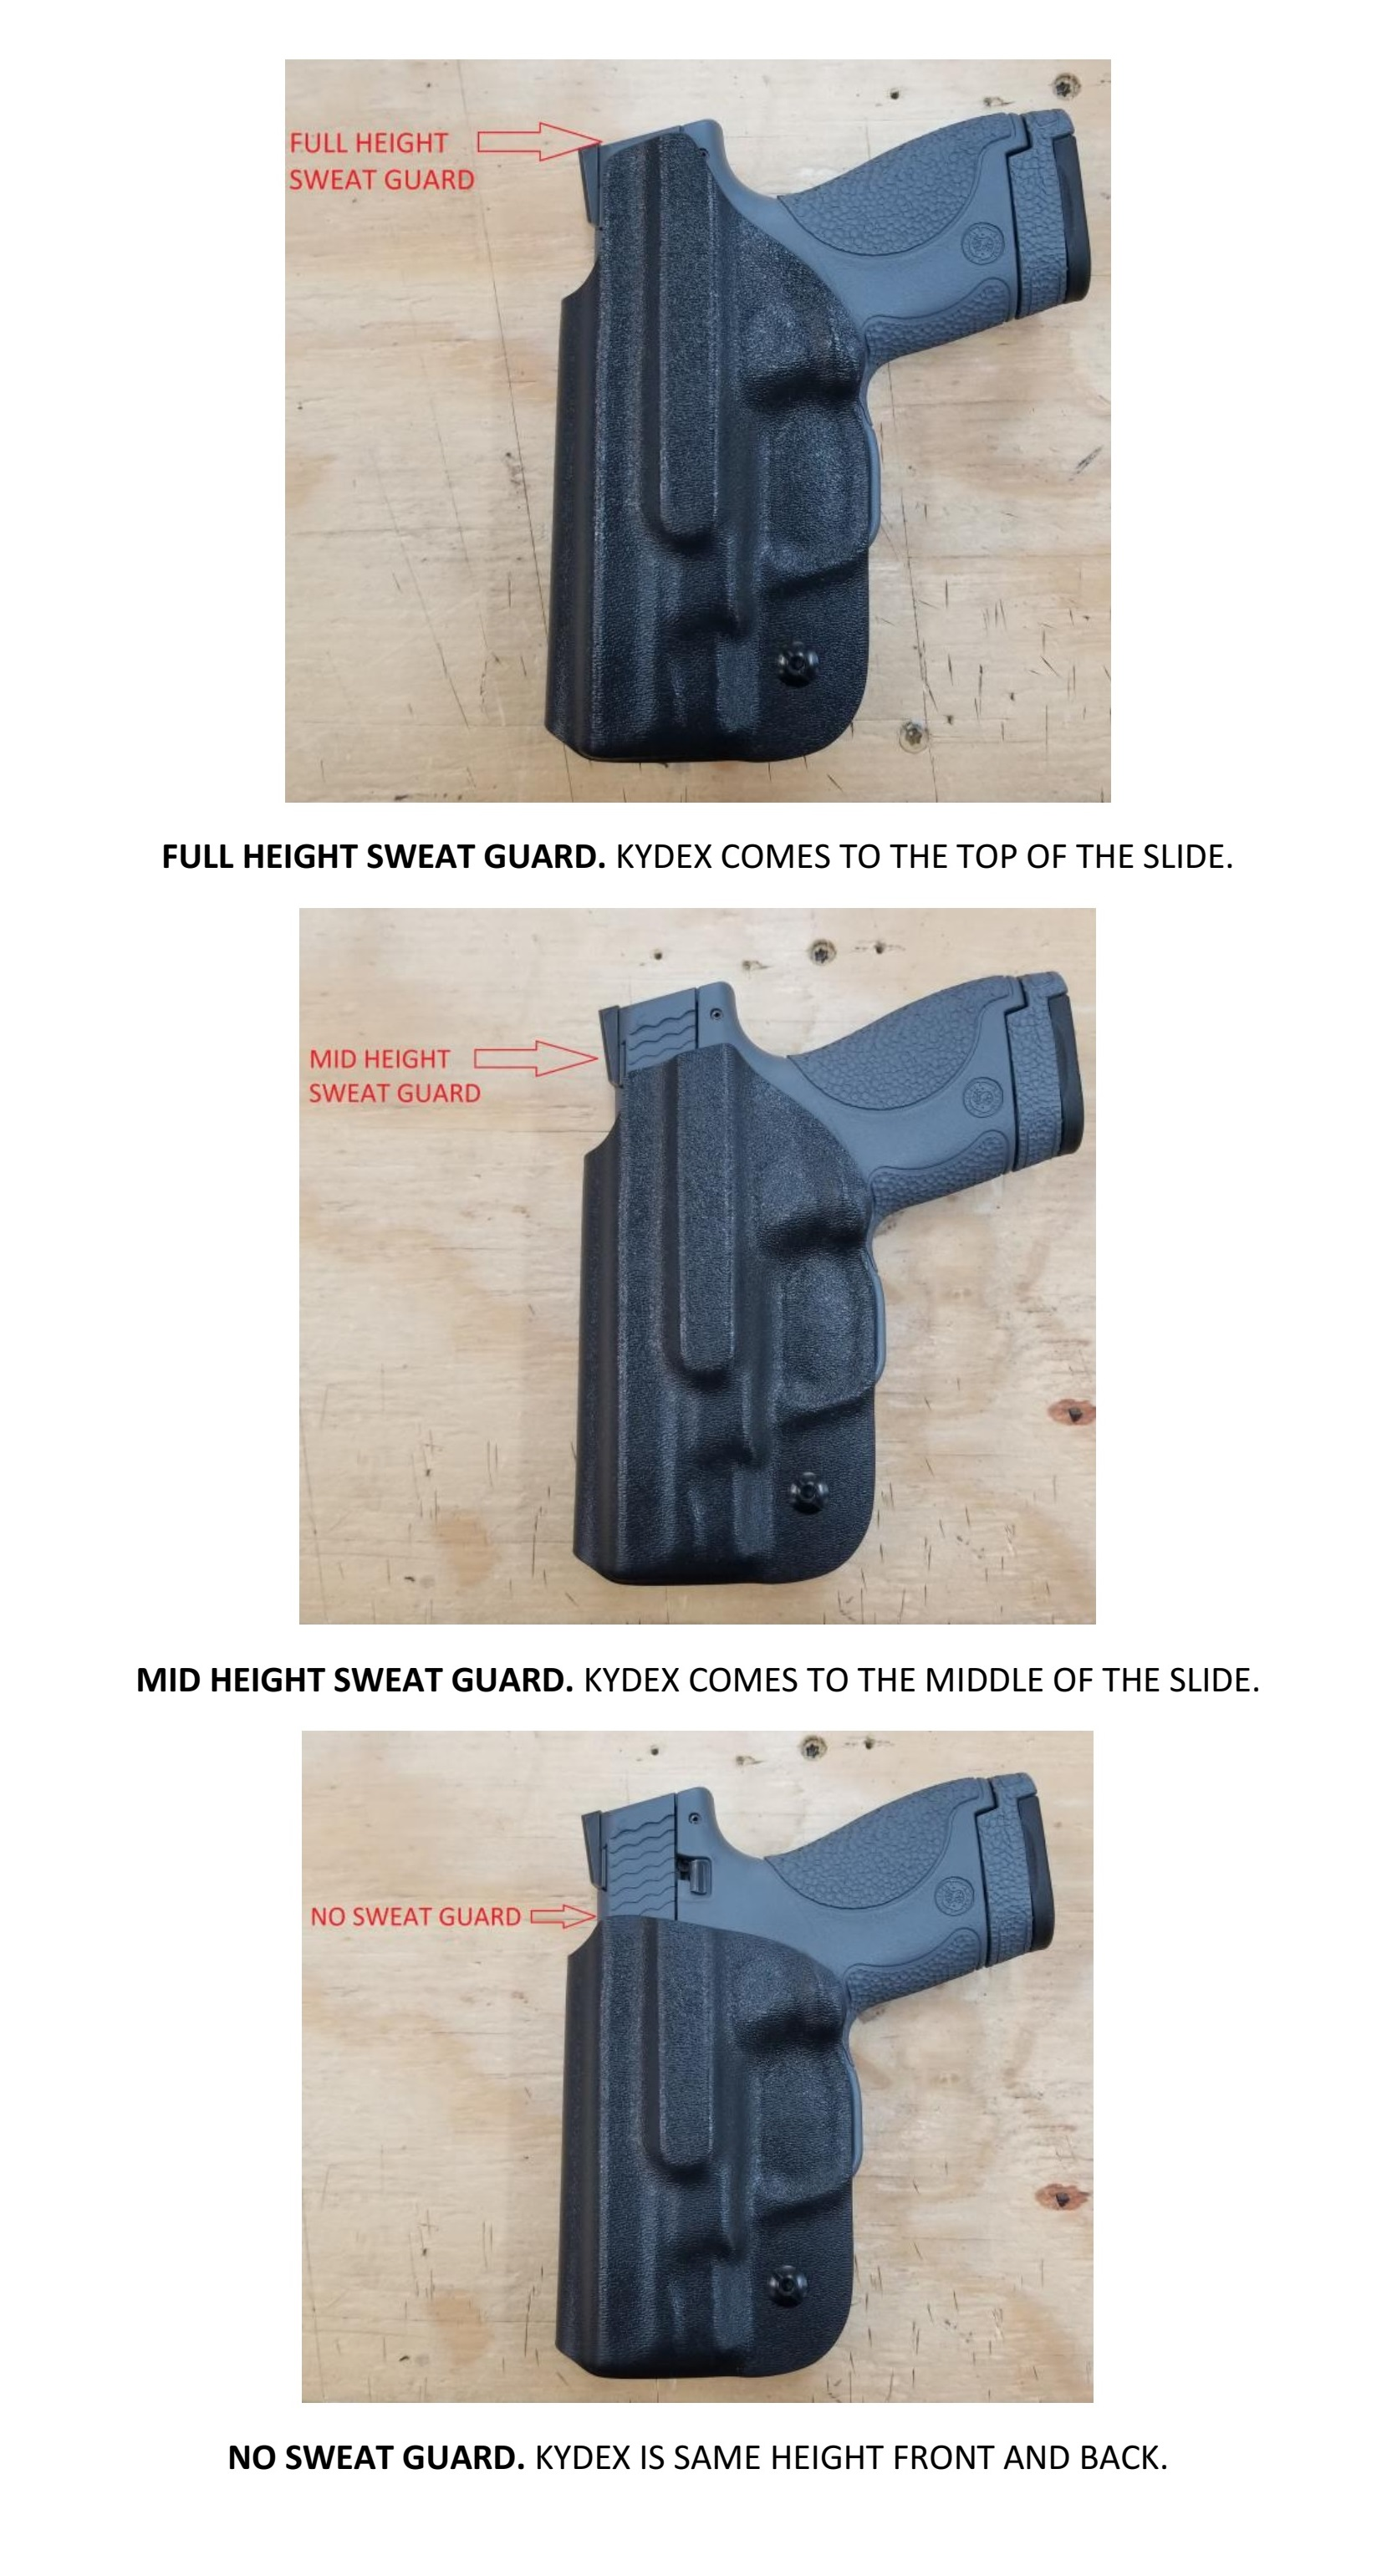 sweat-guard-guide2.jpg